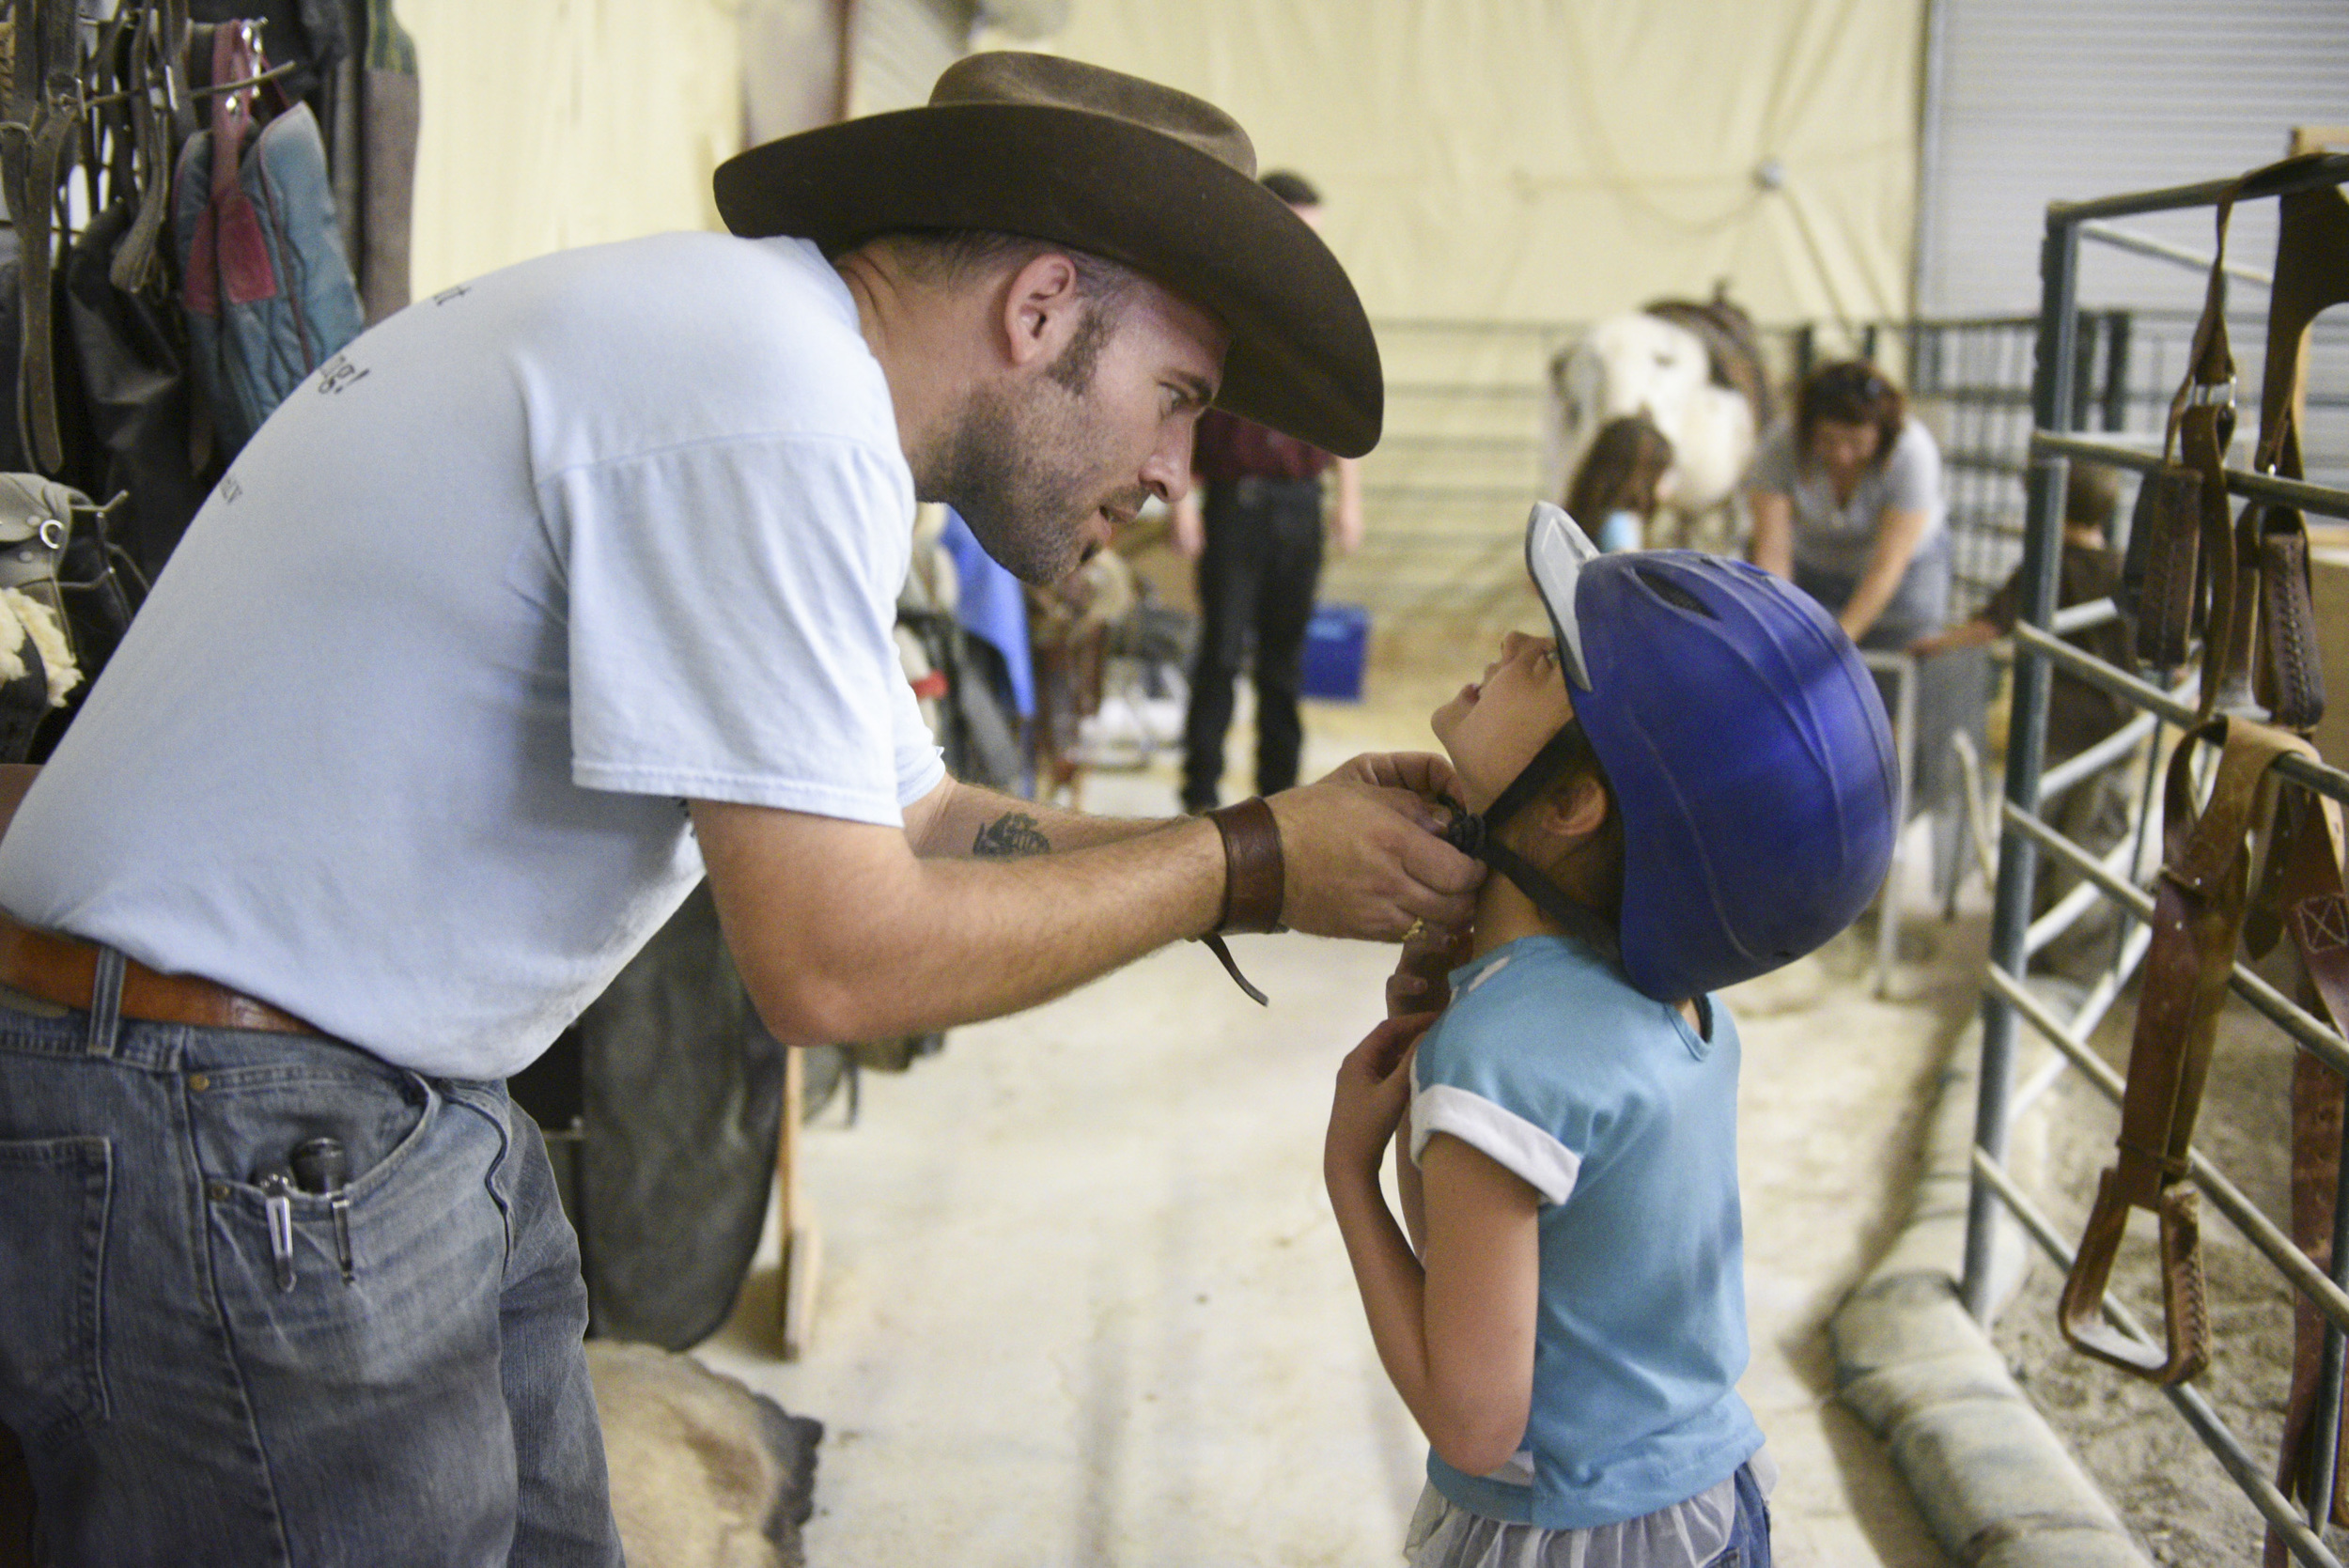 From left, Paul Rogers and Sophia Nola Hudig, 7, try on helmets, looking for a proper fit before Hudig rides the horse, Pocahontas, at Paradise Ranch in Las Vegas, Wednesday, June 3, 2015. Hudig, who has been diagnosed with autism and ADHD, has been part of the Ranch's Horse Assisted Therapy program on a scholarship for three years. (Jason Ogulnik/Las Vegas Review-Journal)